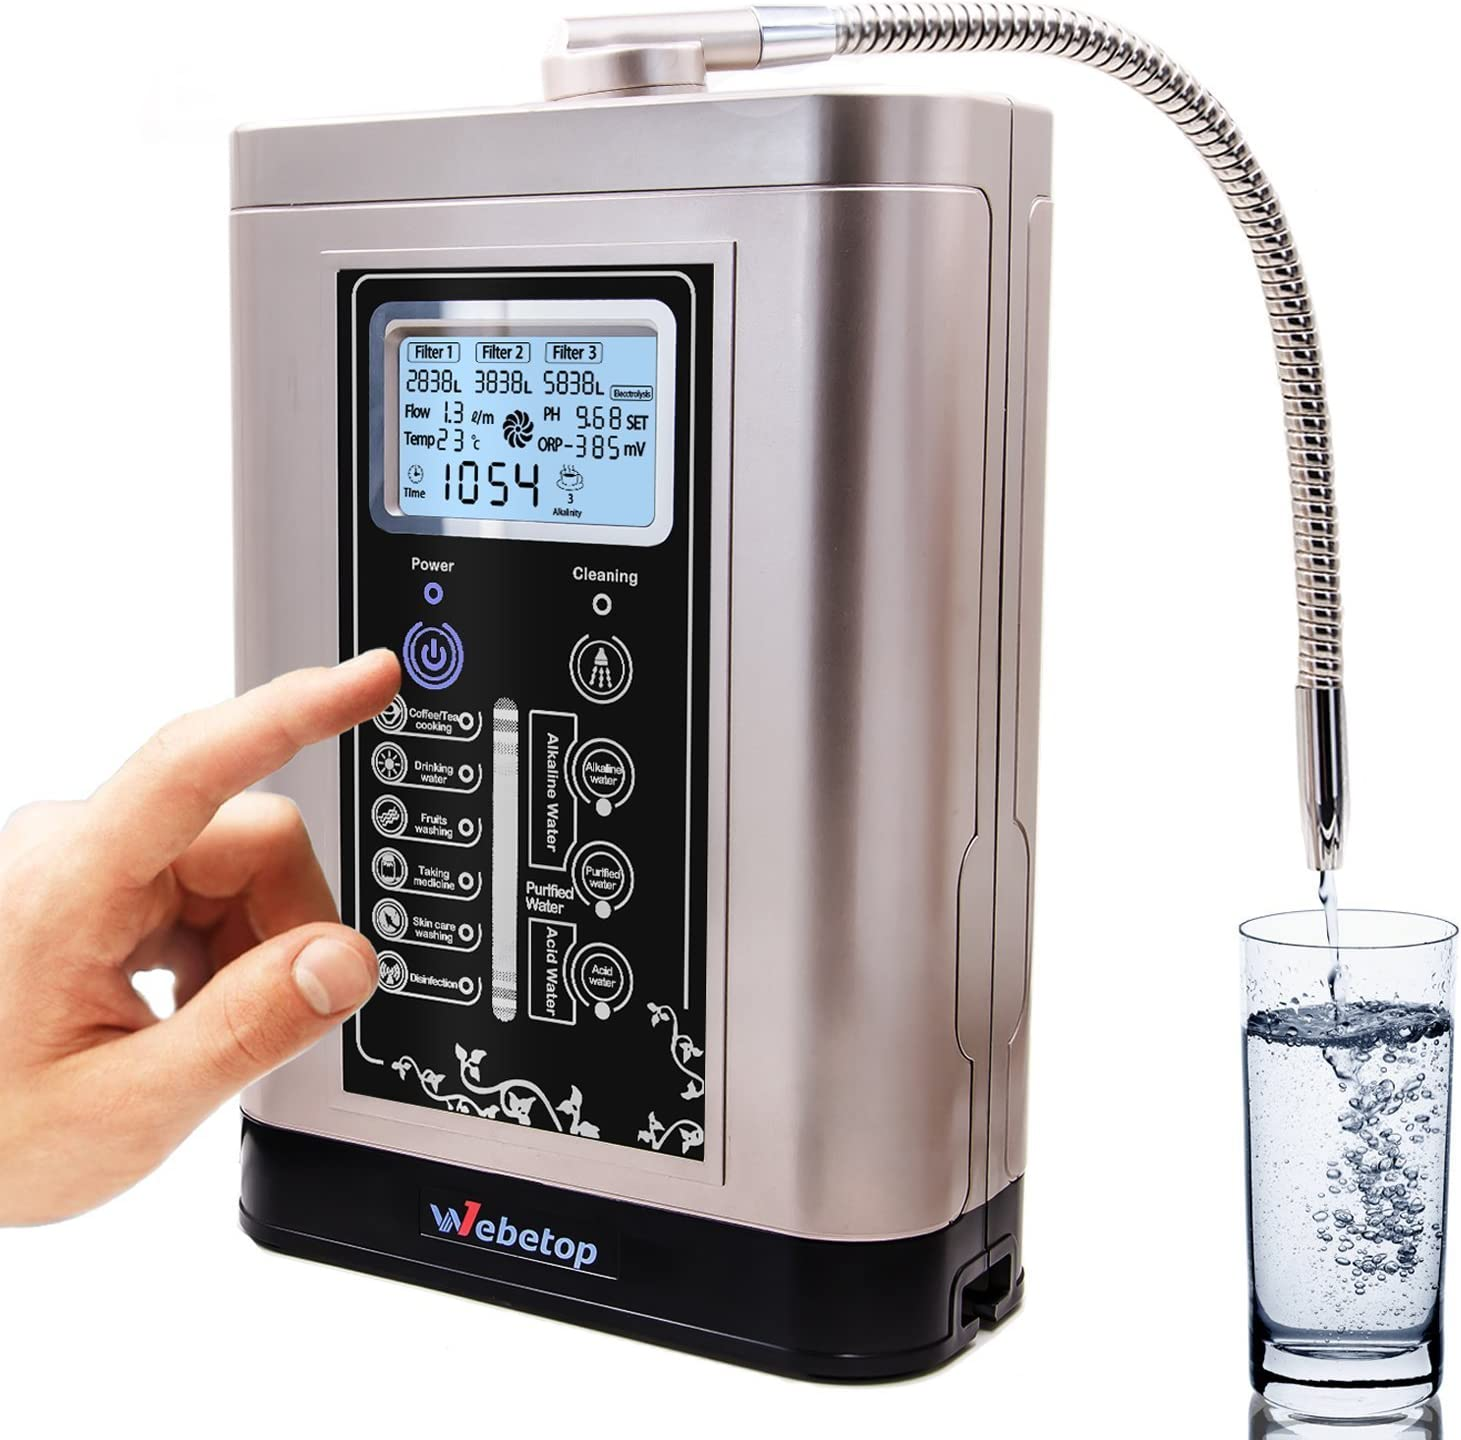 AquaGreen Alkaline Water Ionizer Machine AG7.0 Silver,Water Filtration System for Home,Produces PH 3.5-10.5 Acid Alkaline Water,Up to 500mV ORP,6000 Liters Per Filter,7 Water Settings,Auto-Cleaning